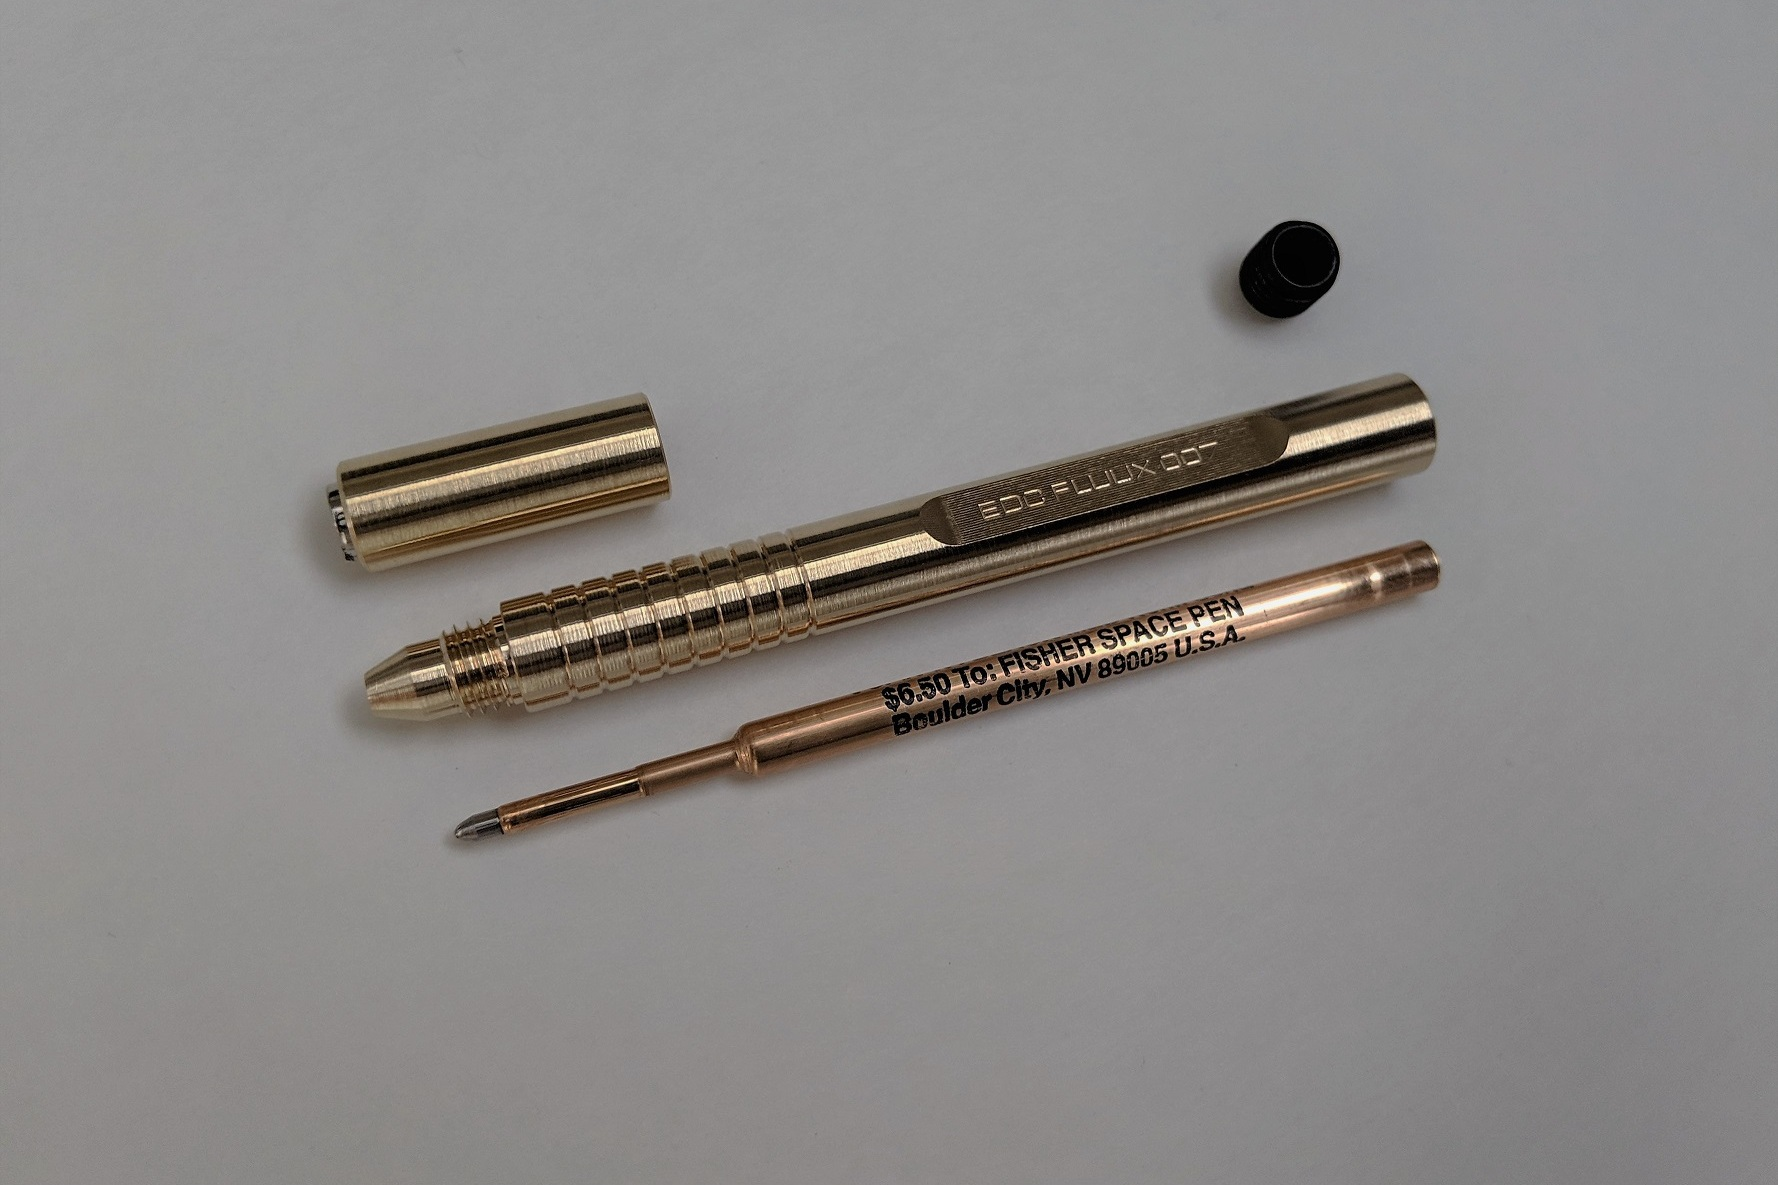 Tungsten Carbide Refill Ball - I just wanted to write that, some very clever folks at Fisher made one wizz-bang of a refill…it writes in space, should work on your desk.